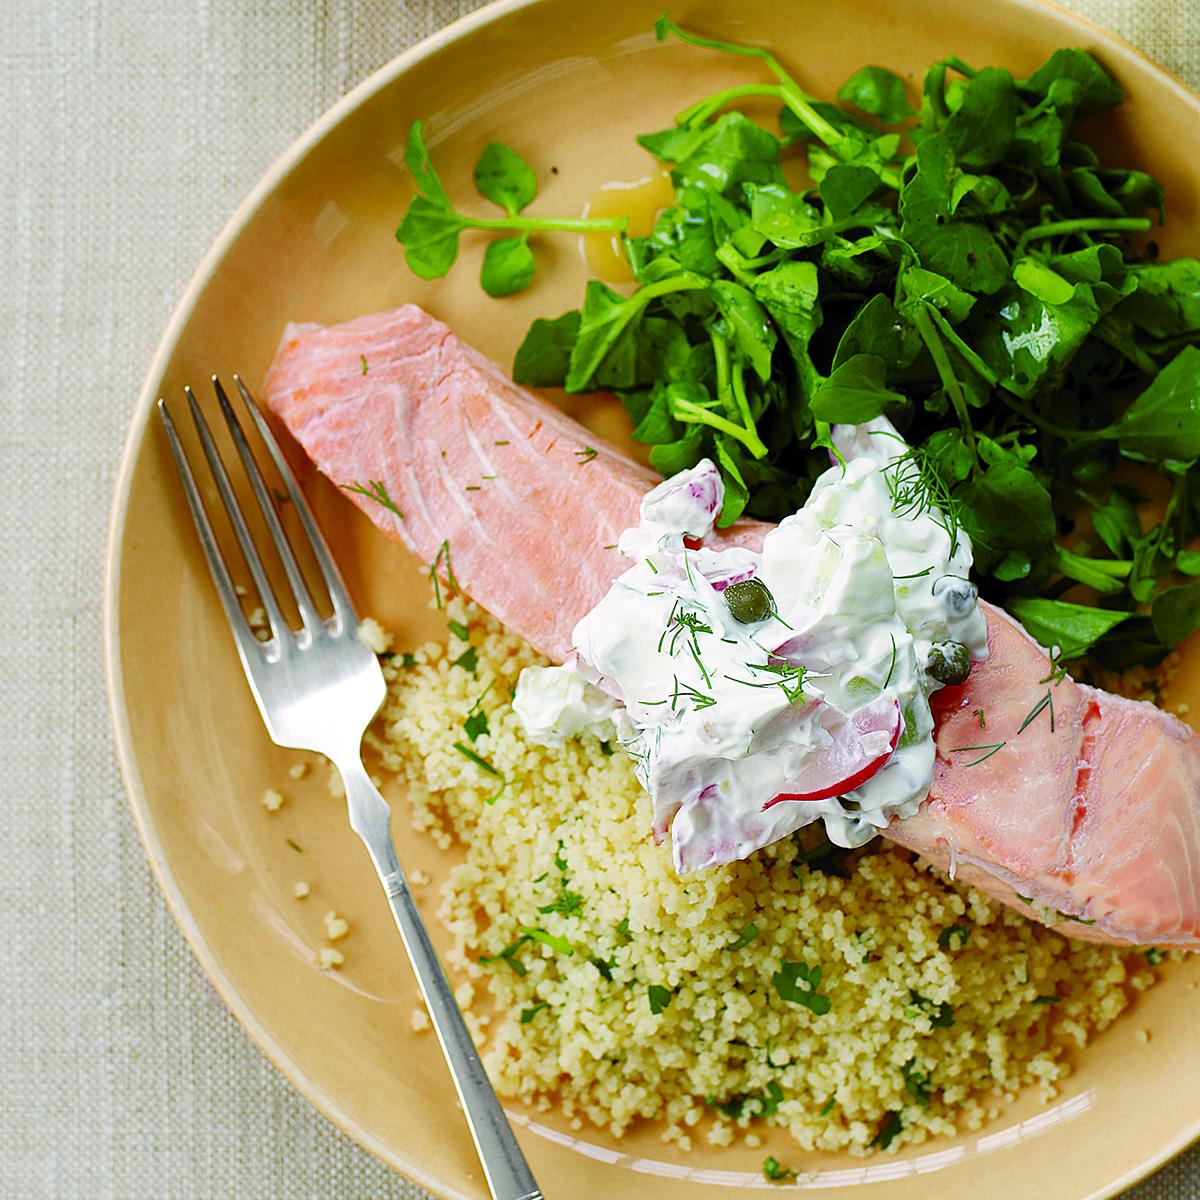 Poached Salmon with Parsley Couscous